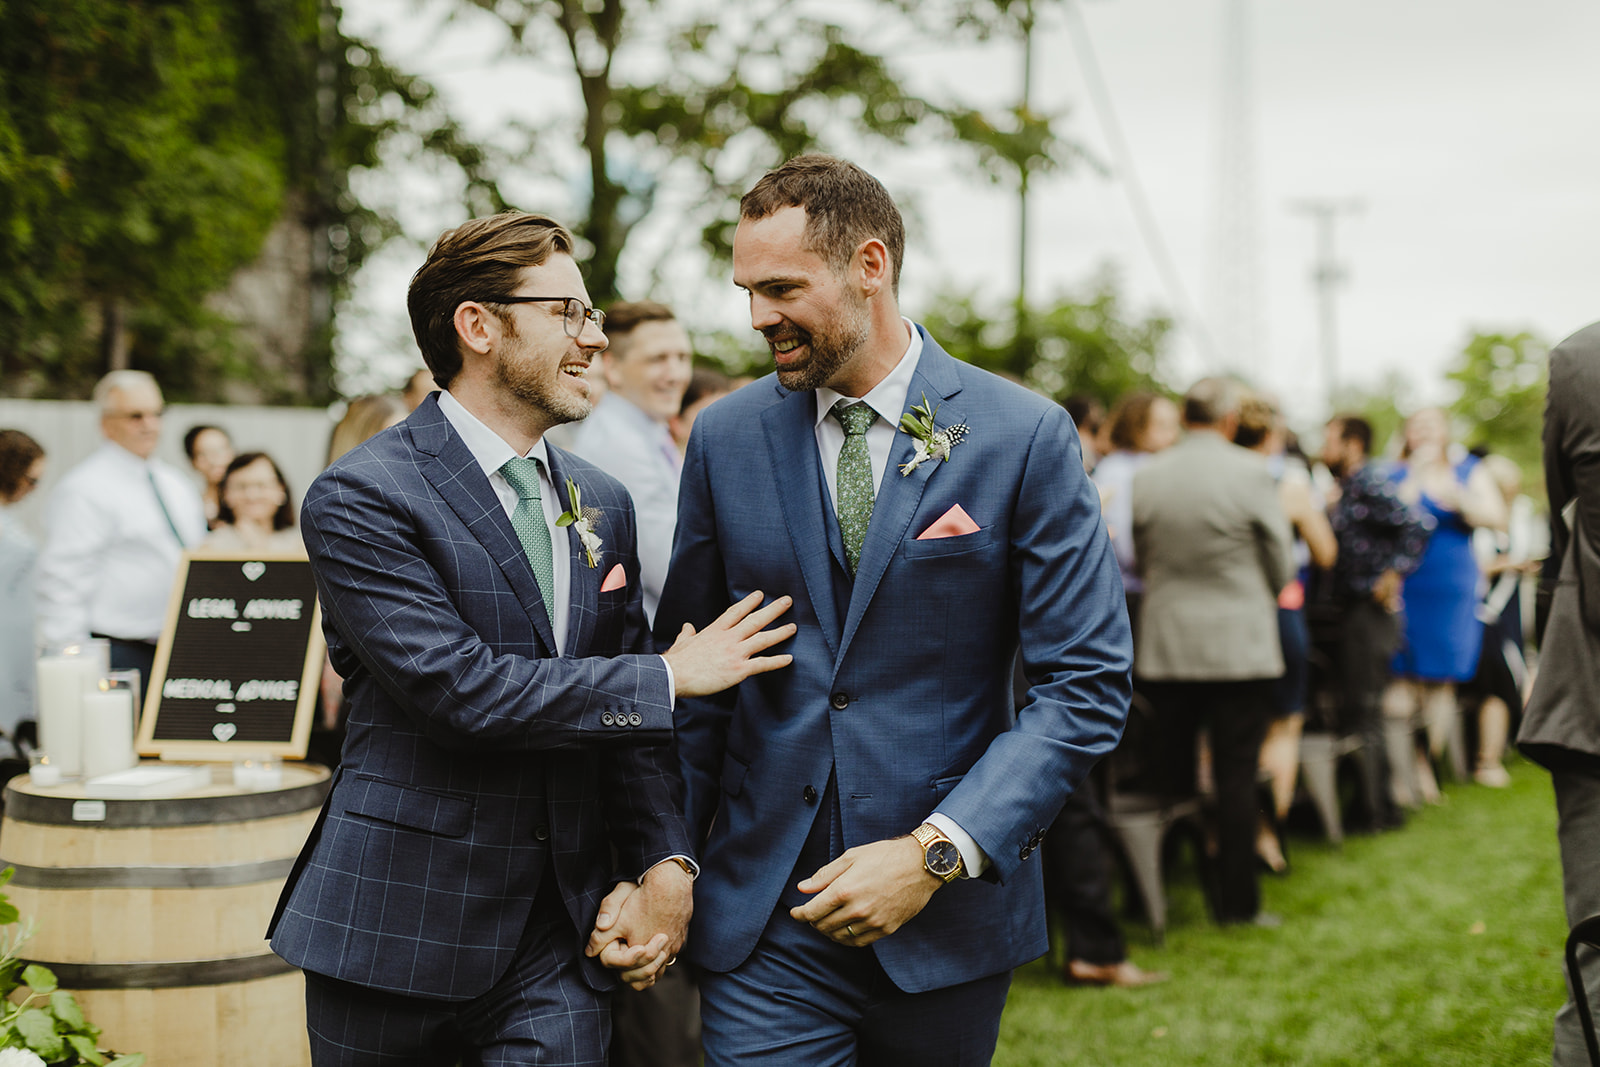 Grooms celebrating after their wedding ceremony